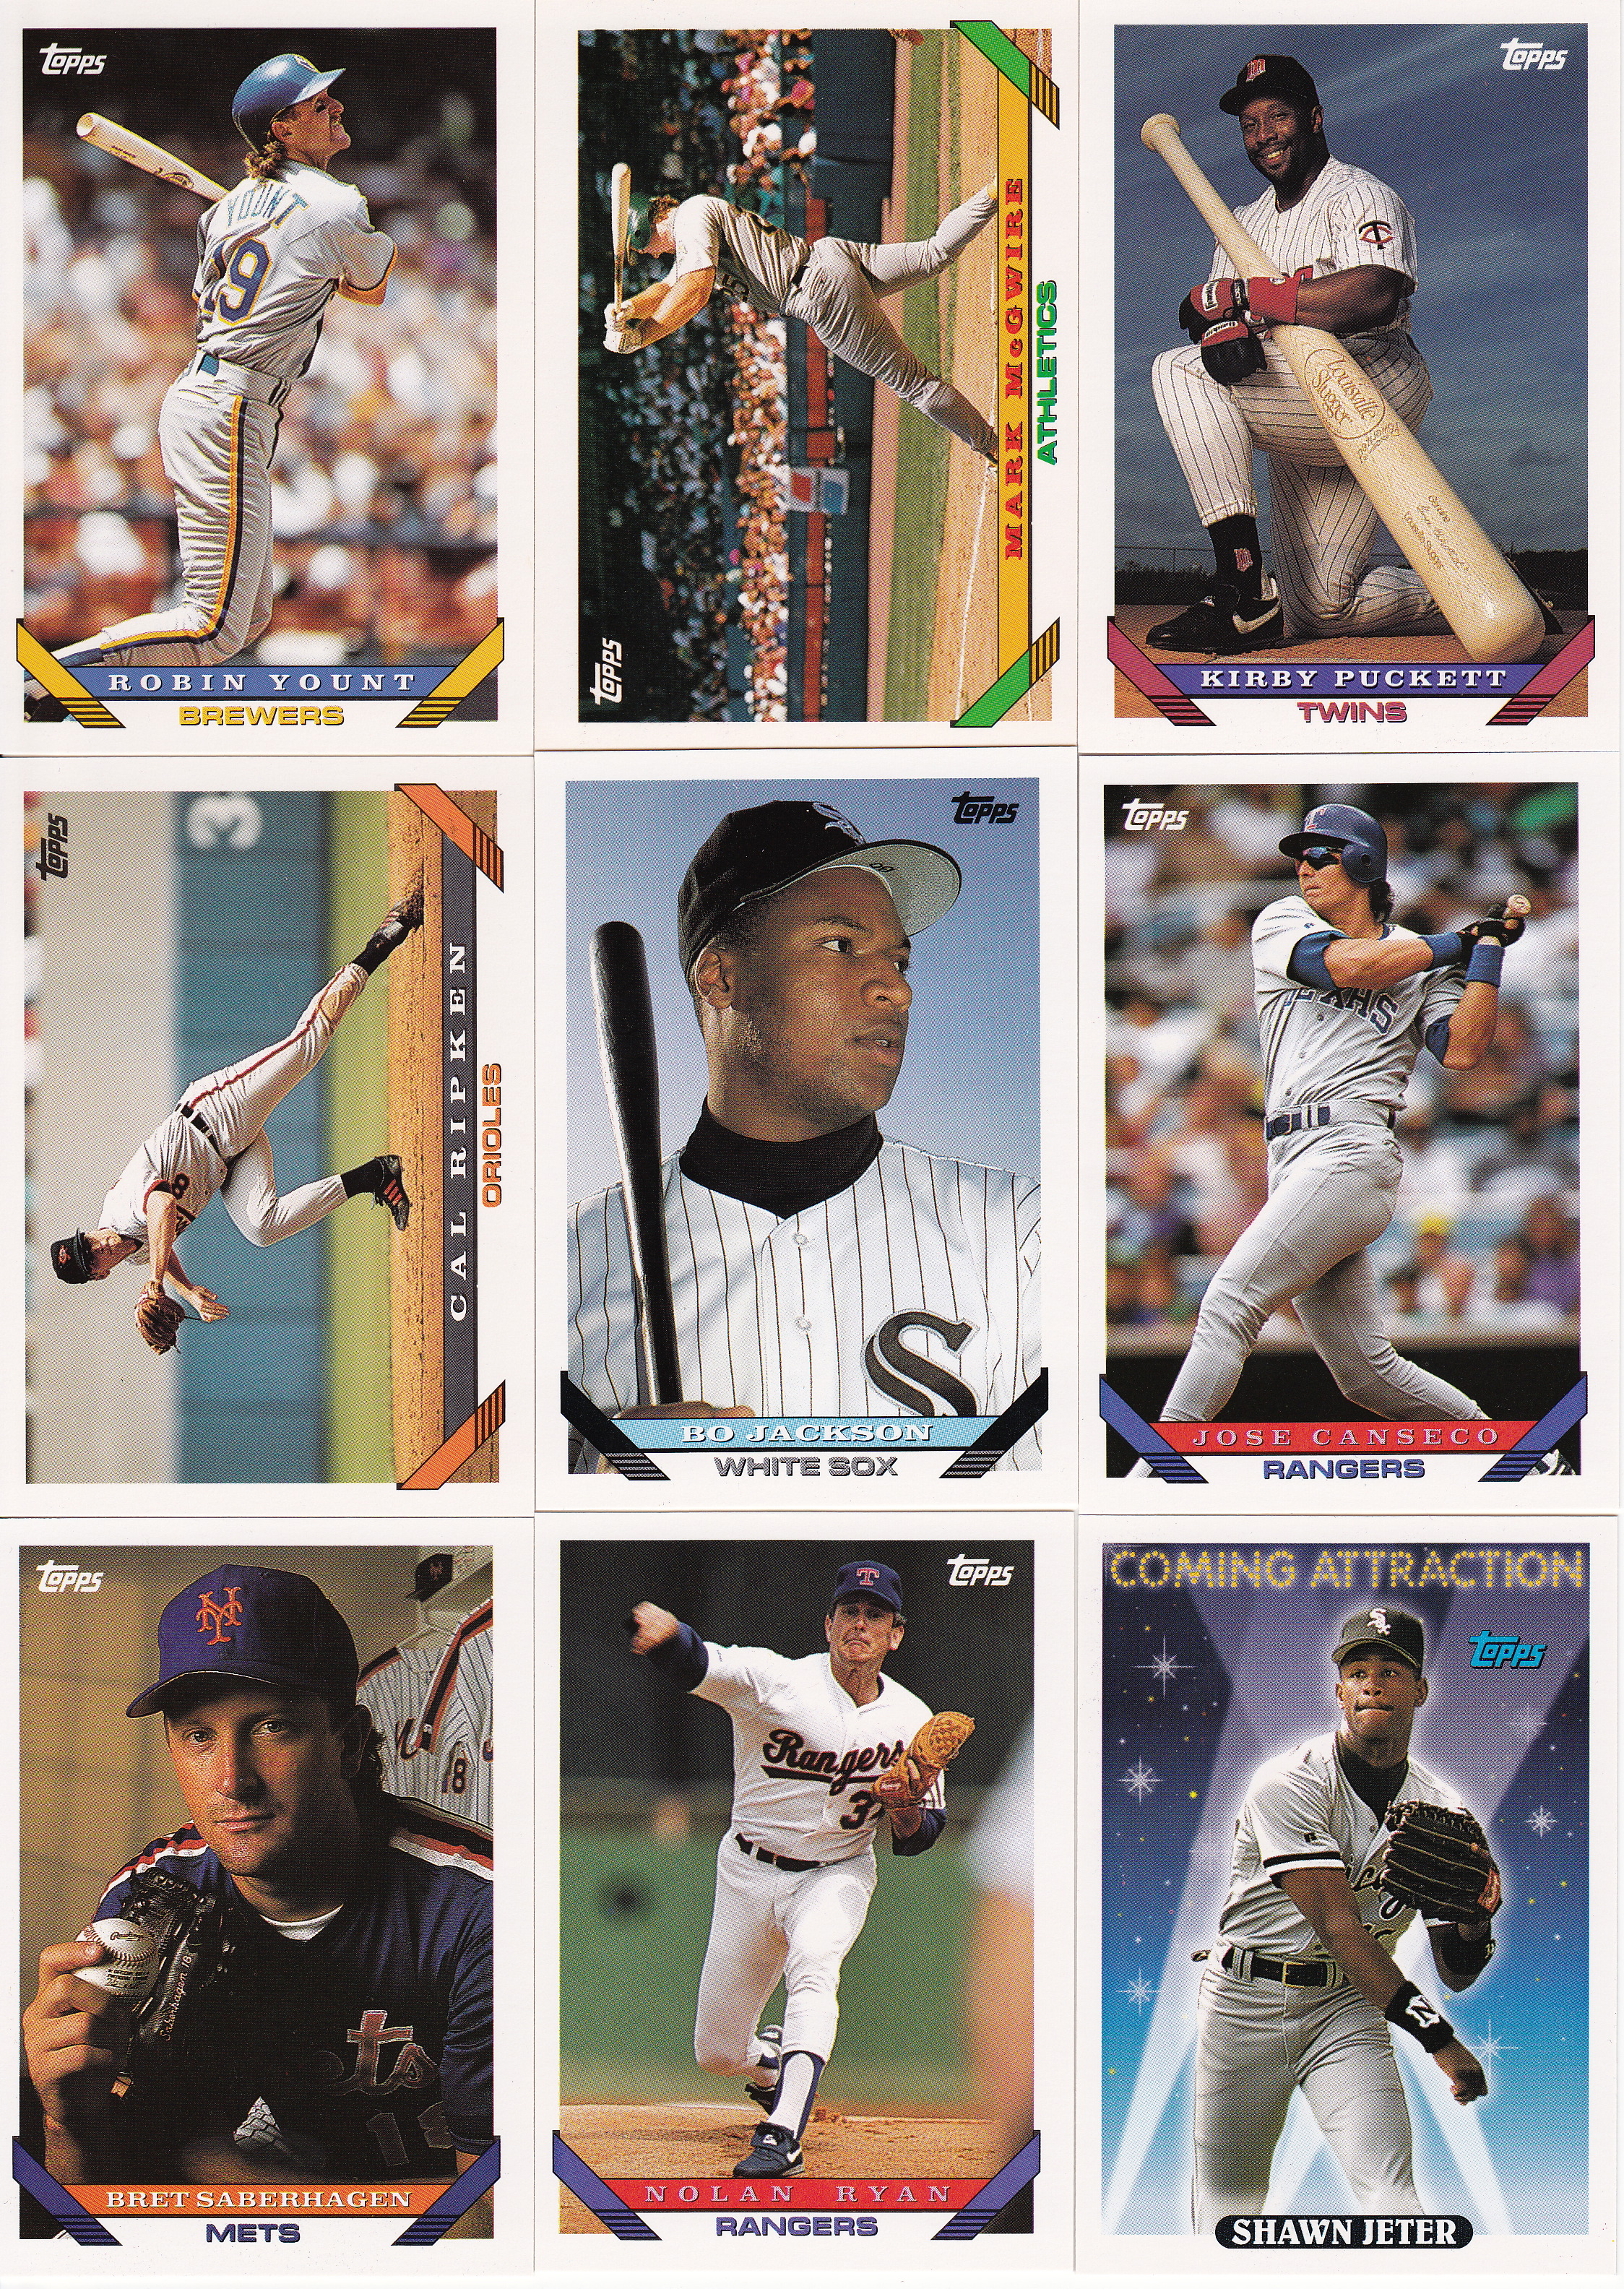 Topps 1993 Lifetime Topps Project